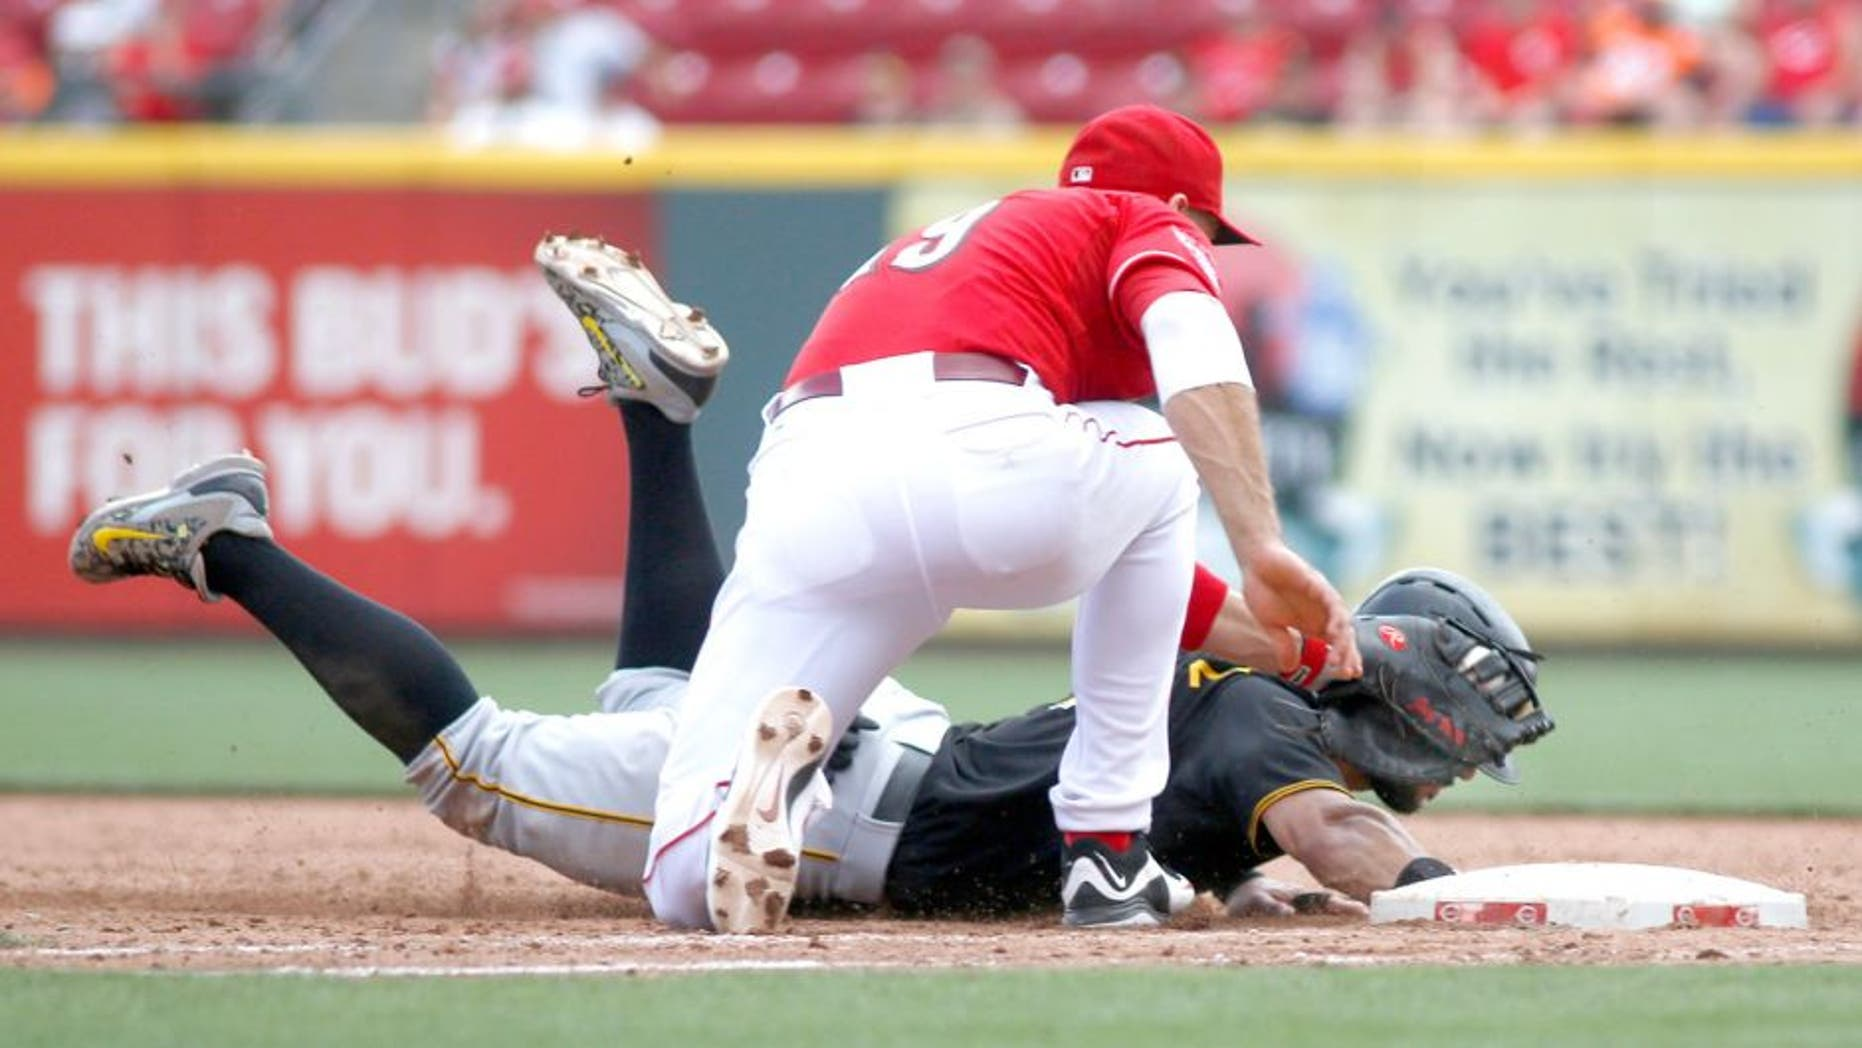 Sep 7, 2015; Cincinnati, OH, USA; Pittsburgh Pirates first baseman Sean Rodriguez (3) is picked off at first by Cincinnati Reds first baseman Joey Votto (19) in the ninth inning at Great American Ball Park. The Reds won 3-1. Mandatory Credit: David Kohl-USA TODAY Sports